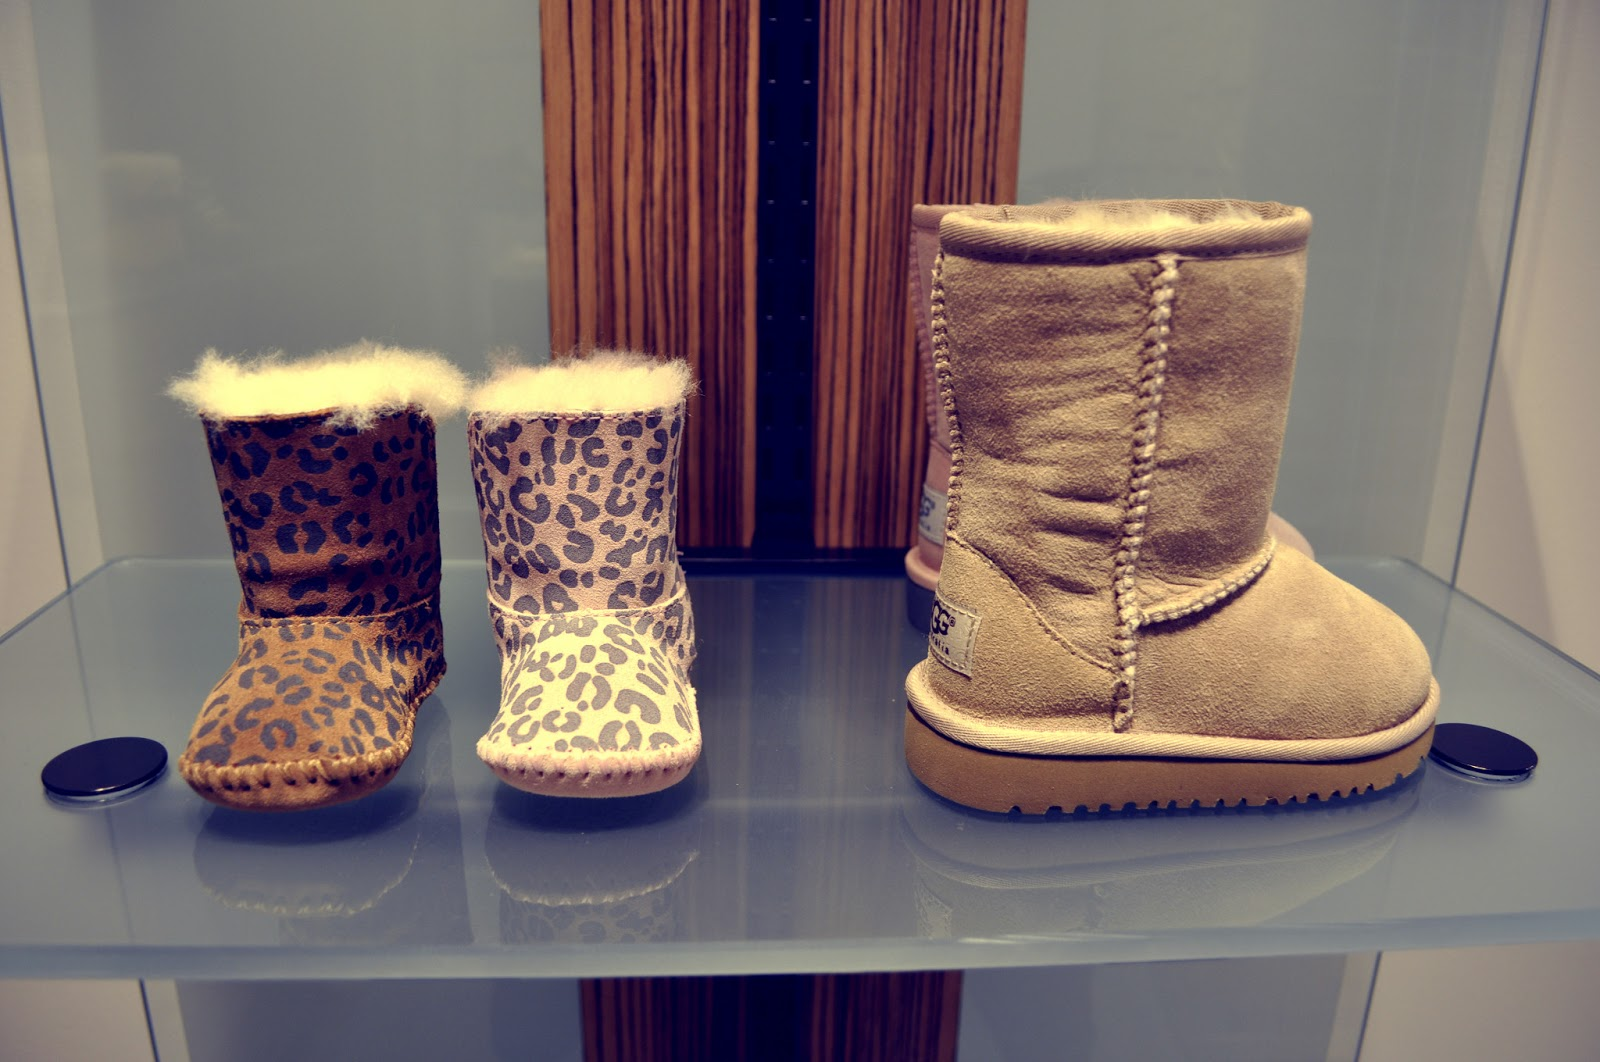 Mode La Viiie Sneakers Beauté Ugg Loves Rouge Lyon En FYHxpFUq7w